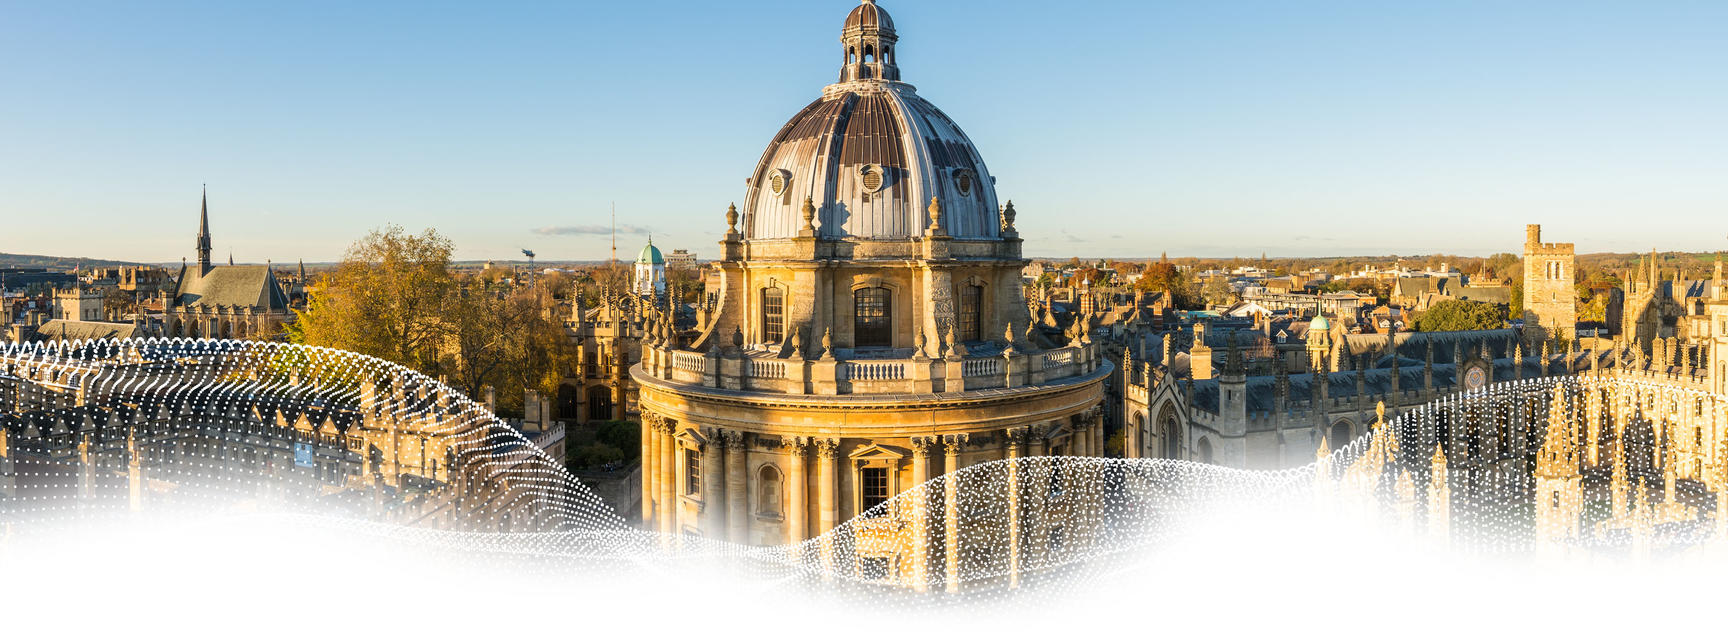 radcliffe camera in Oxford. Photocredit: Shutterstock